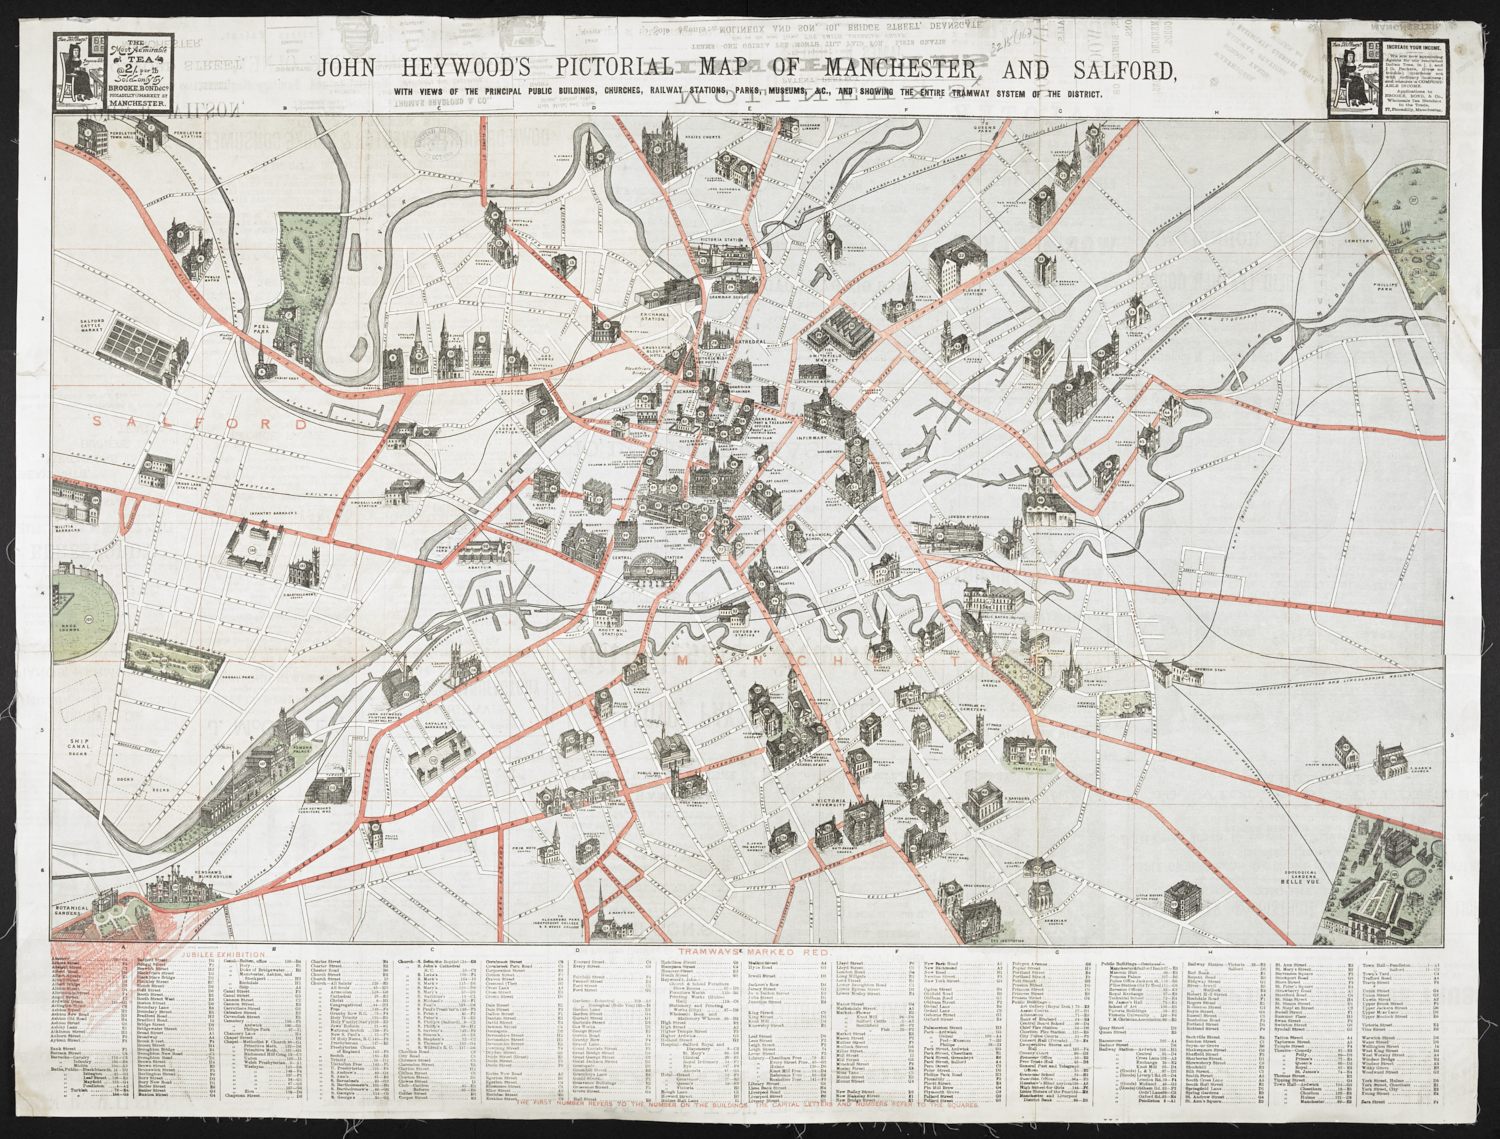 Industry and Empire: the town plans of the 19th century